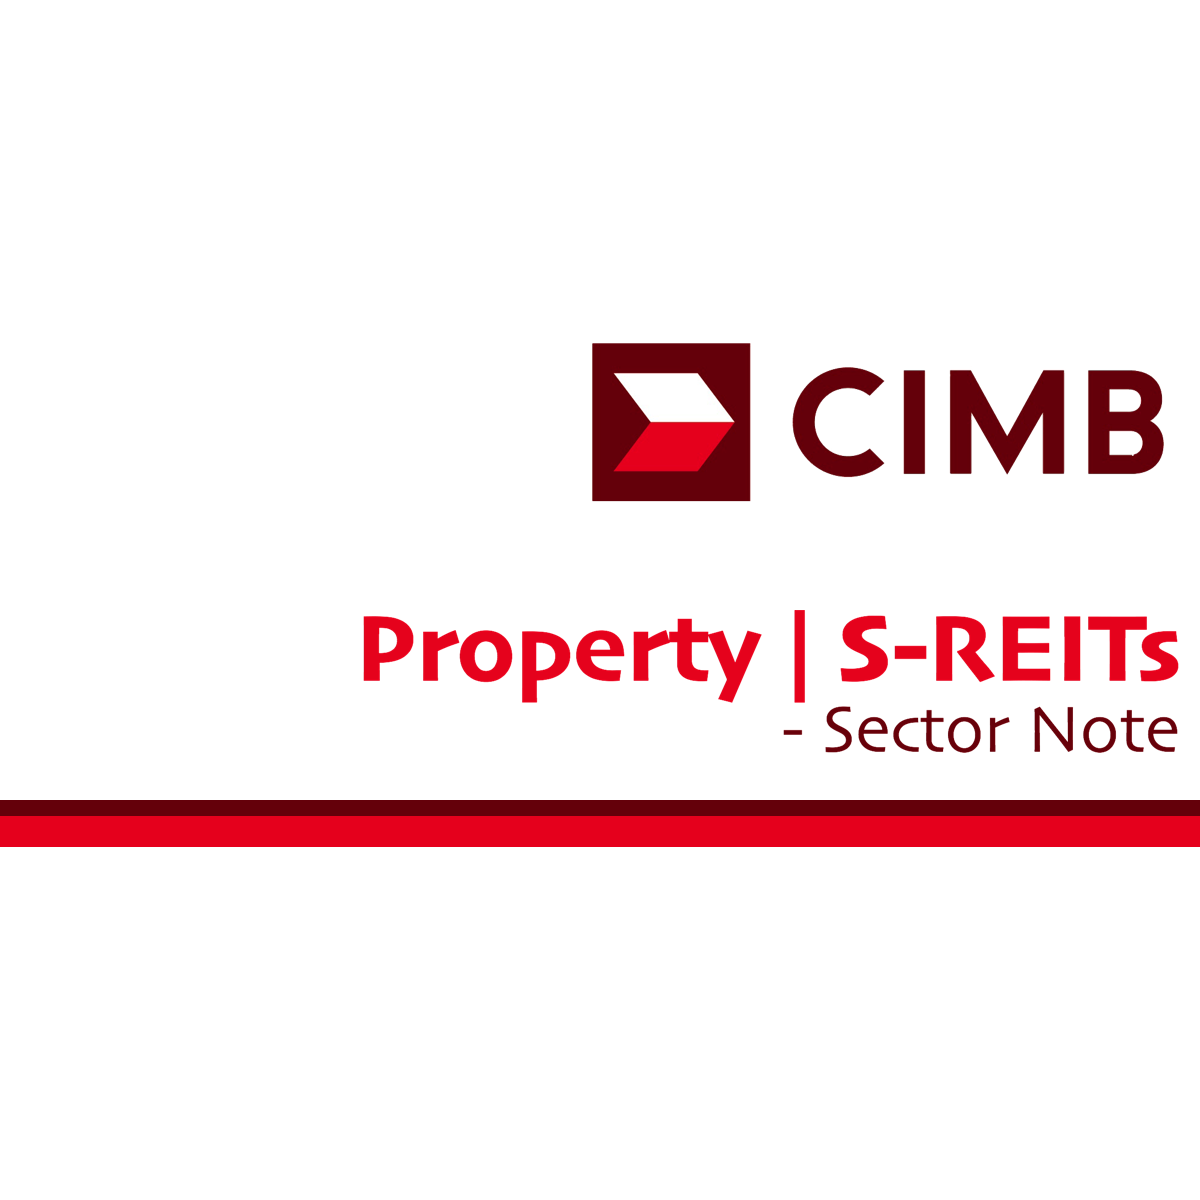 Property - Overall - CIMB Research 2017-12-13: Stay In The Game